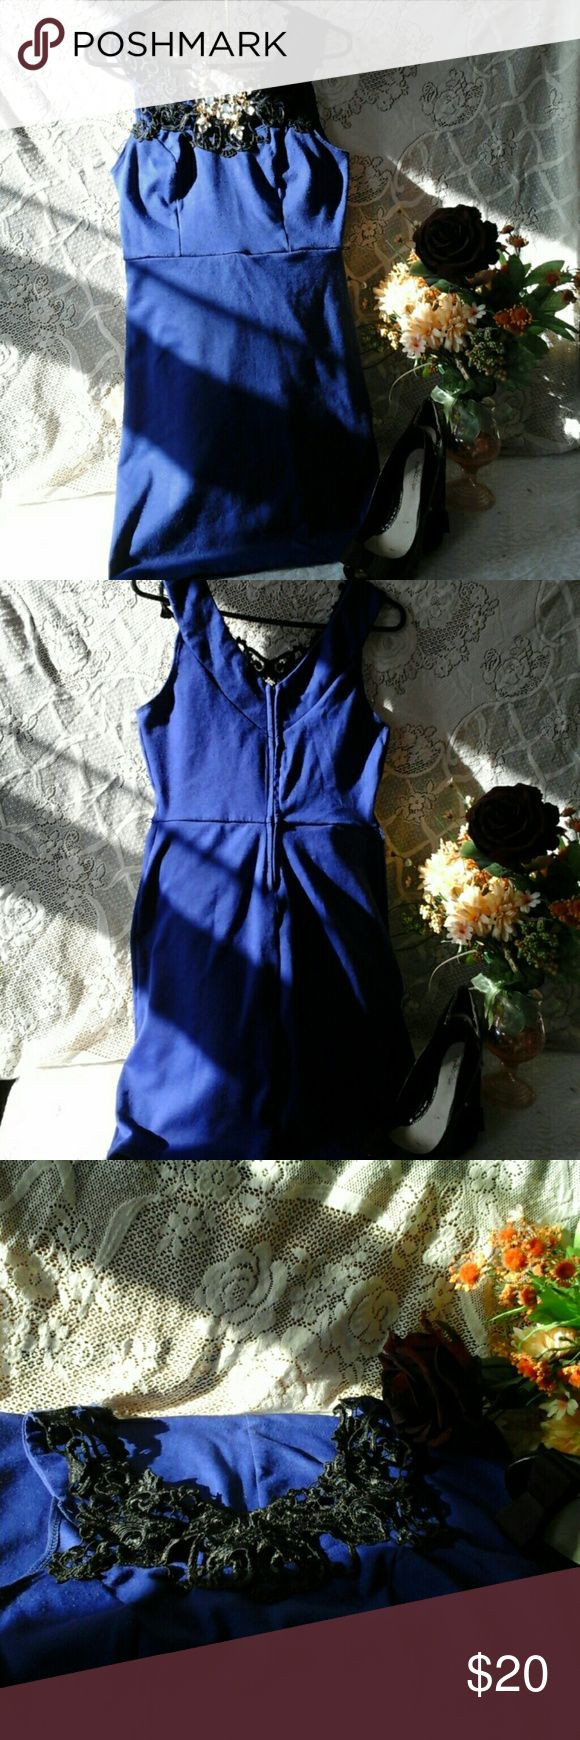 Cute blue dress! Good condition,  89% polyester,  7% rayon, 4% spandex, Junior size. As U Wish Dresses Mini